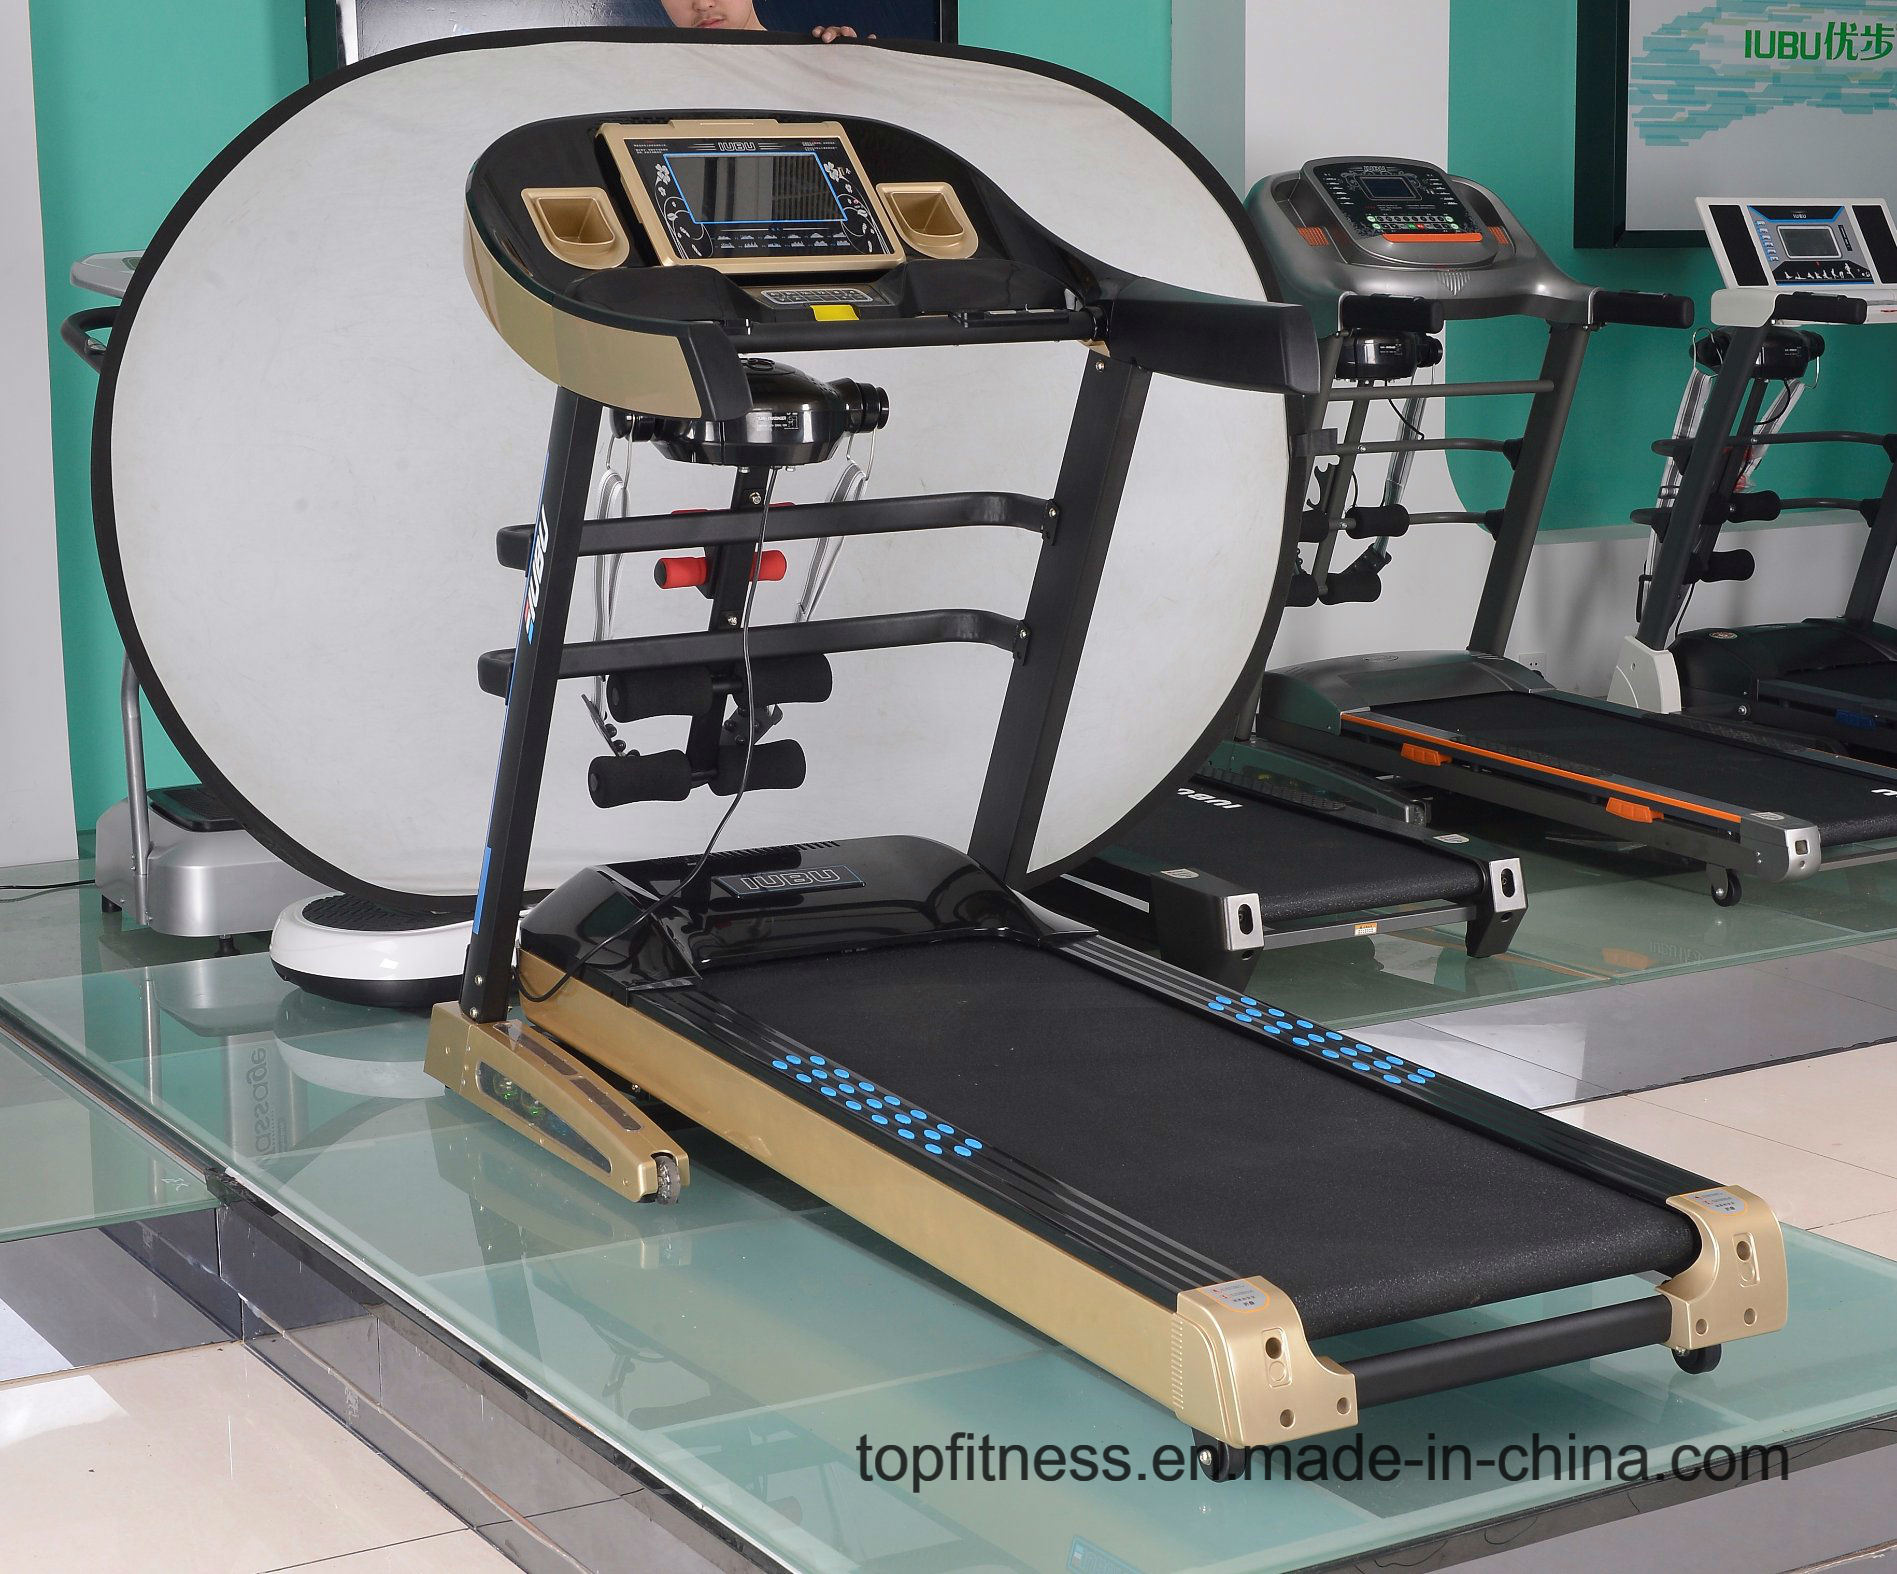 China Pop Design Dc Motor Healthcare Gym Body Fit Treadmill China